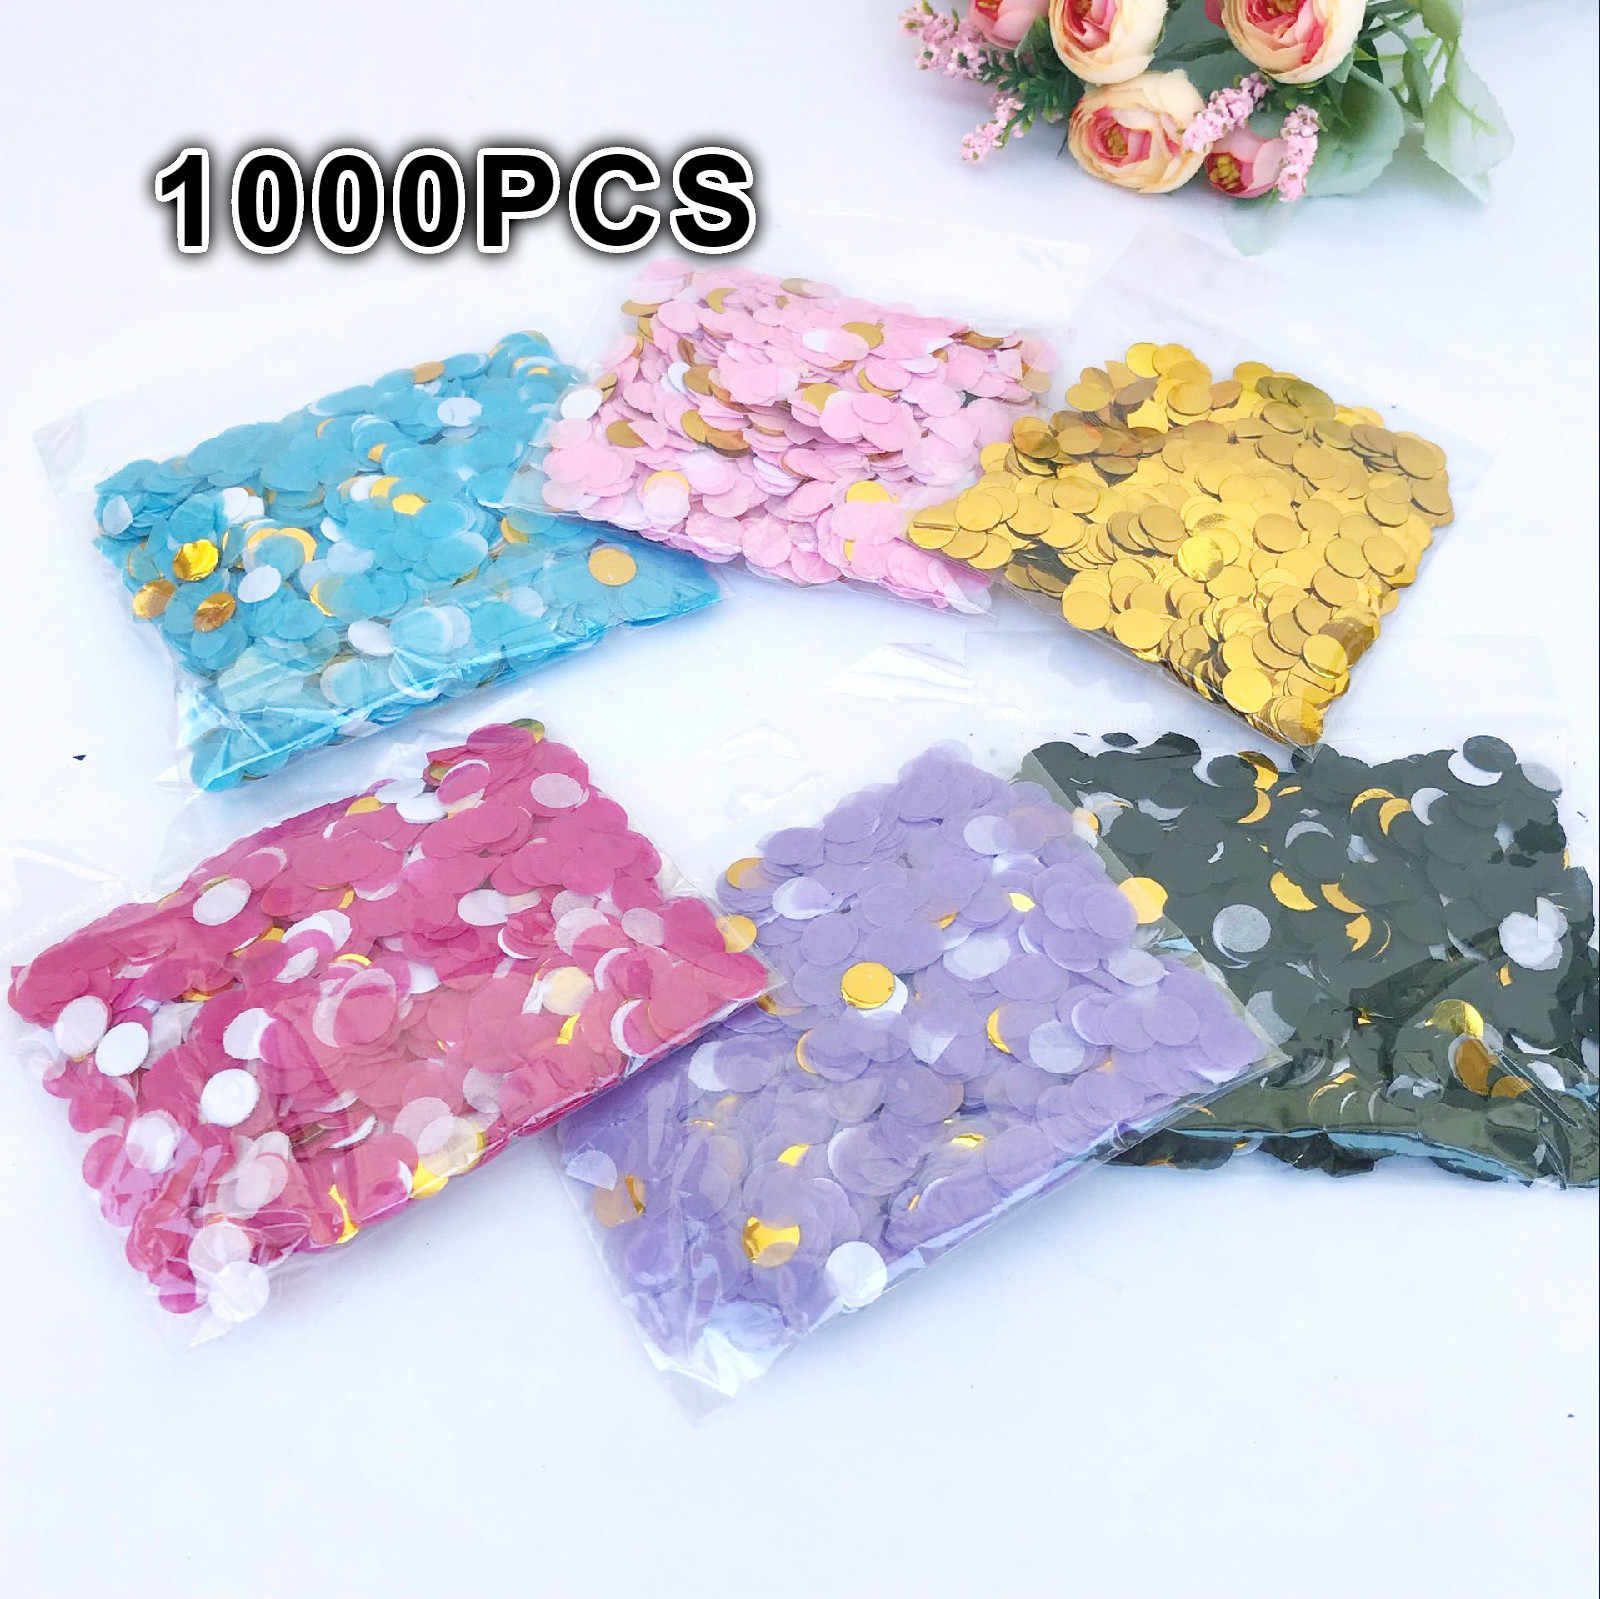 1cm 1000pcs/bag paper Confetti Mix Color for wedding birthday party decoration round Tissue for clear balloons accessories